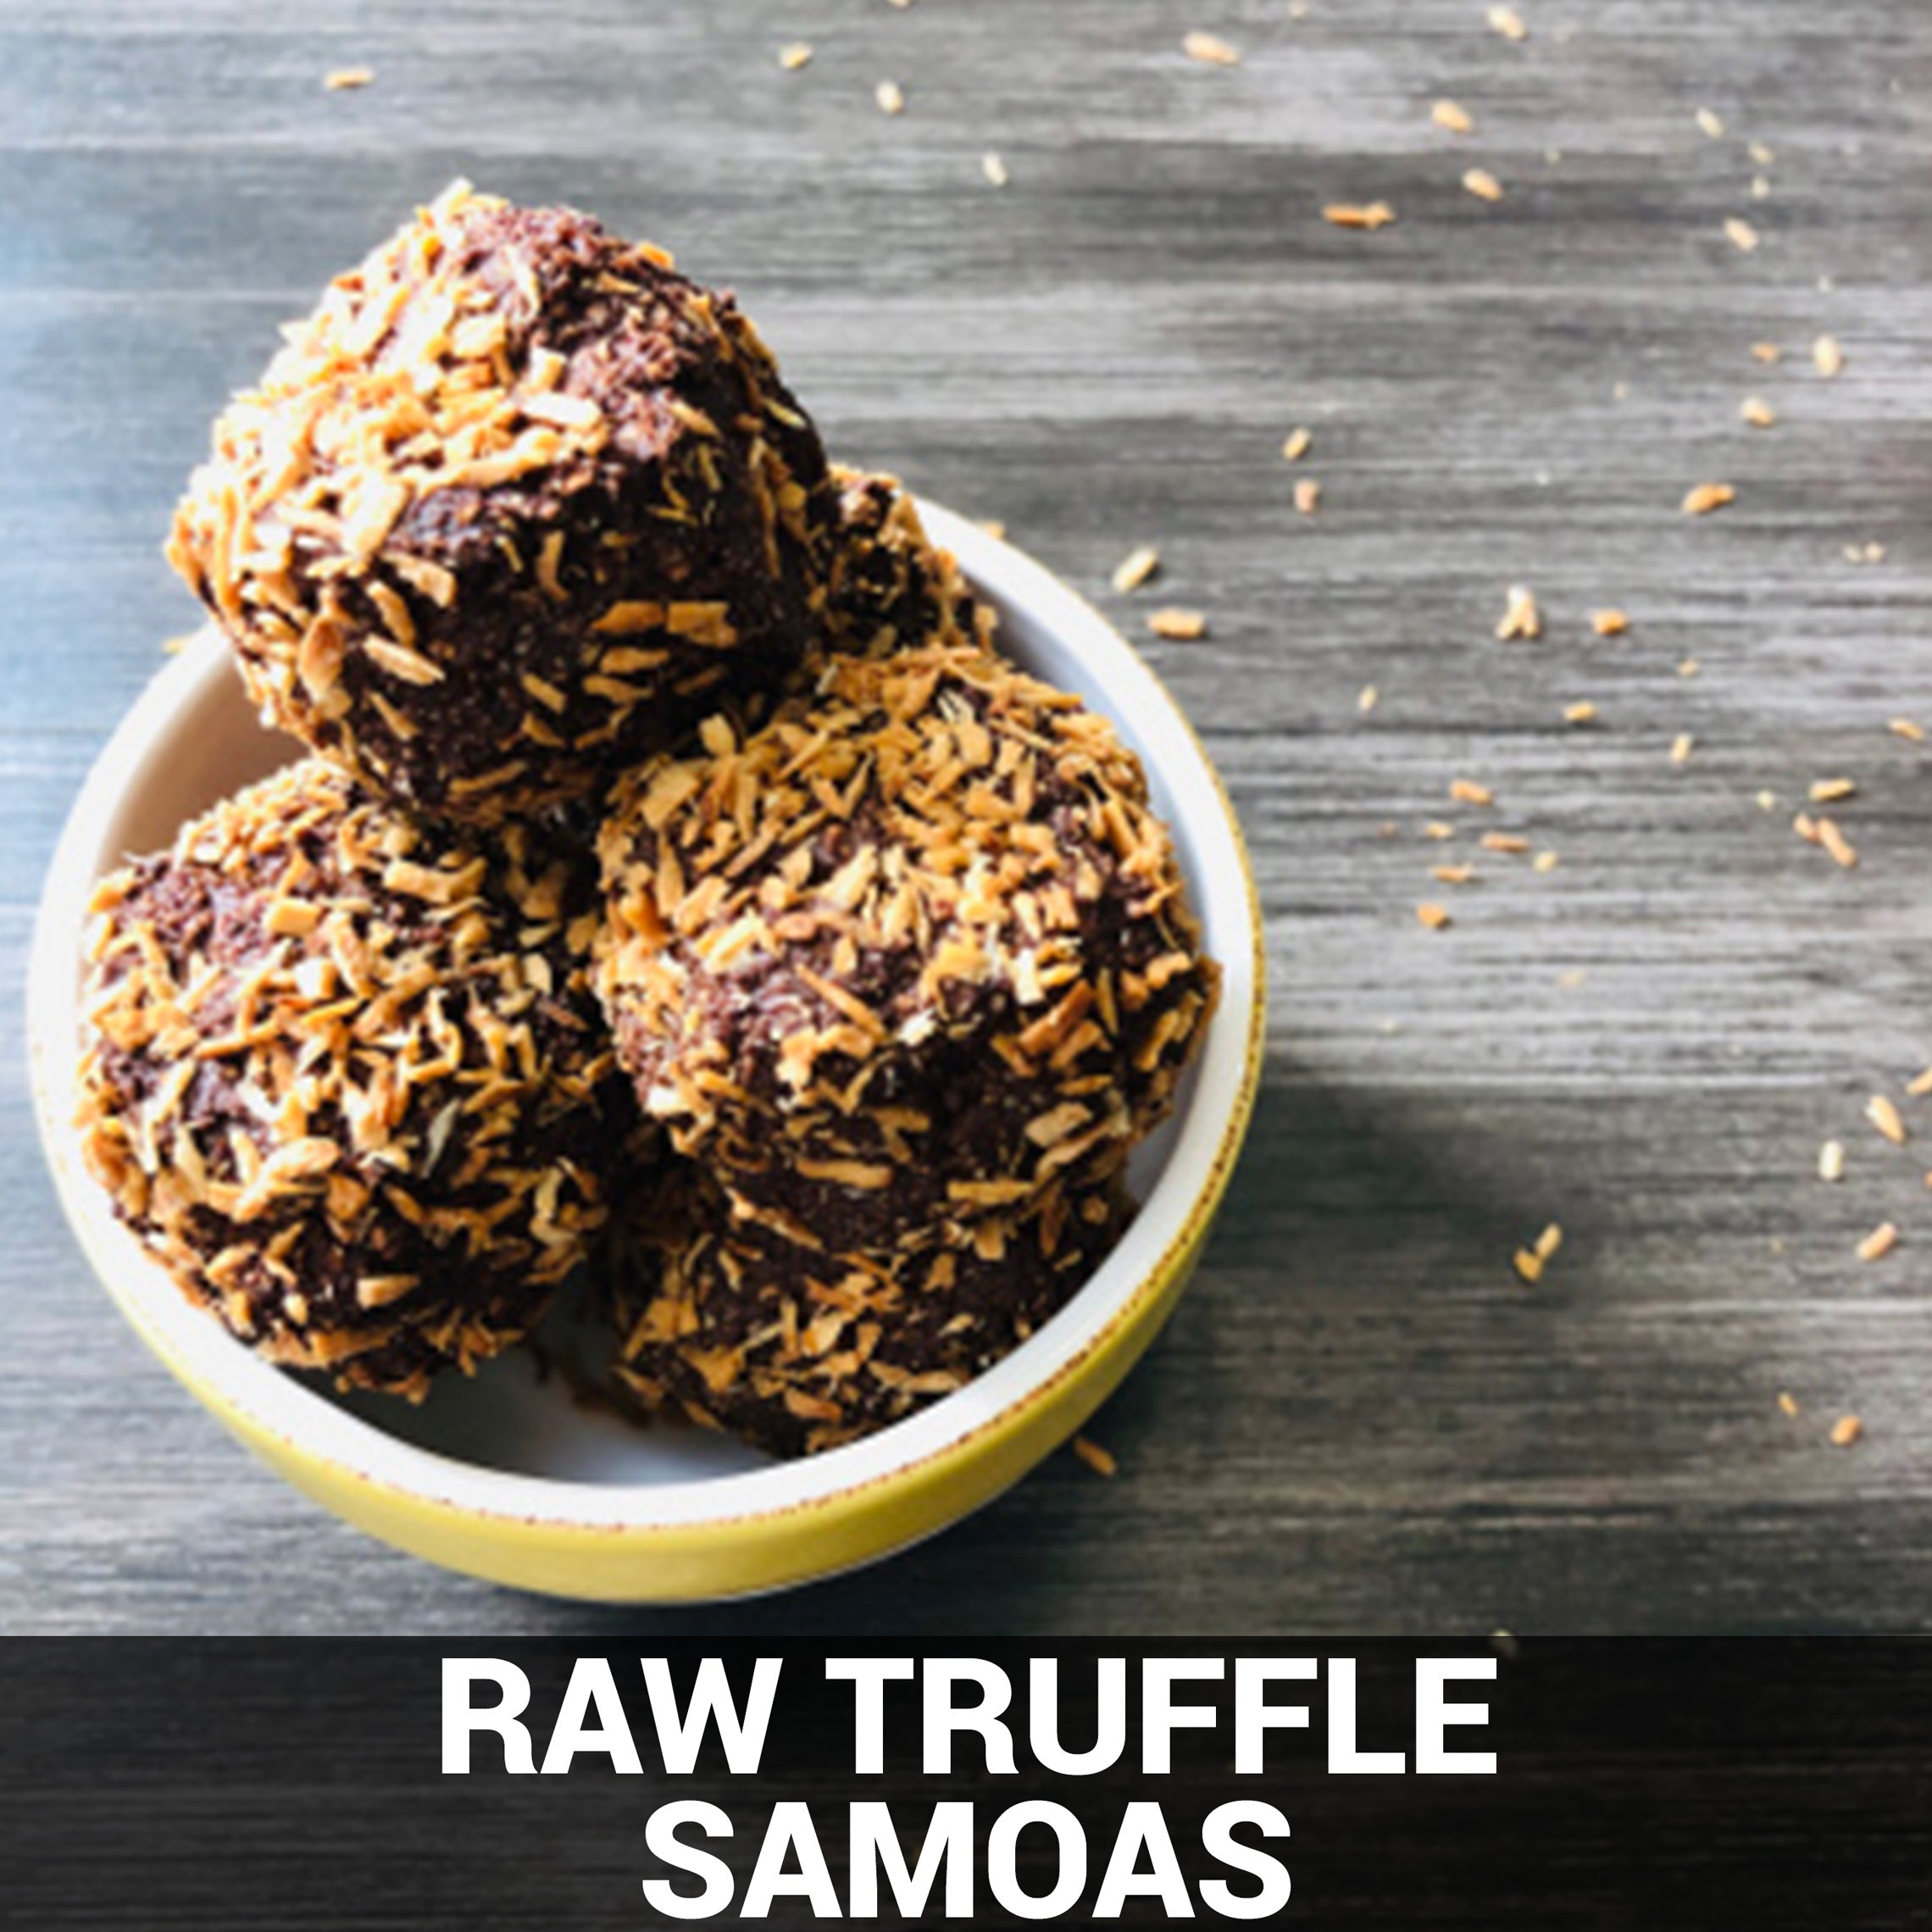 Raw Truffle Samoas Recipe - Foods Alive